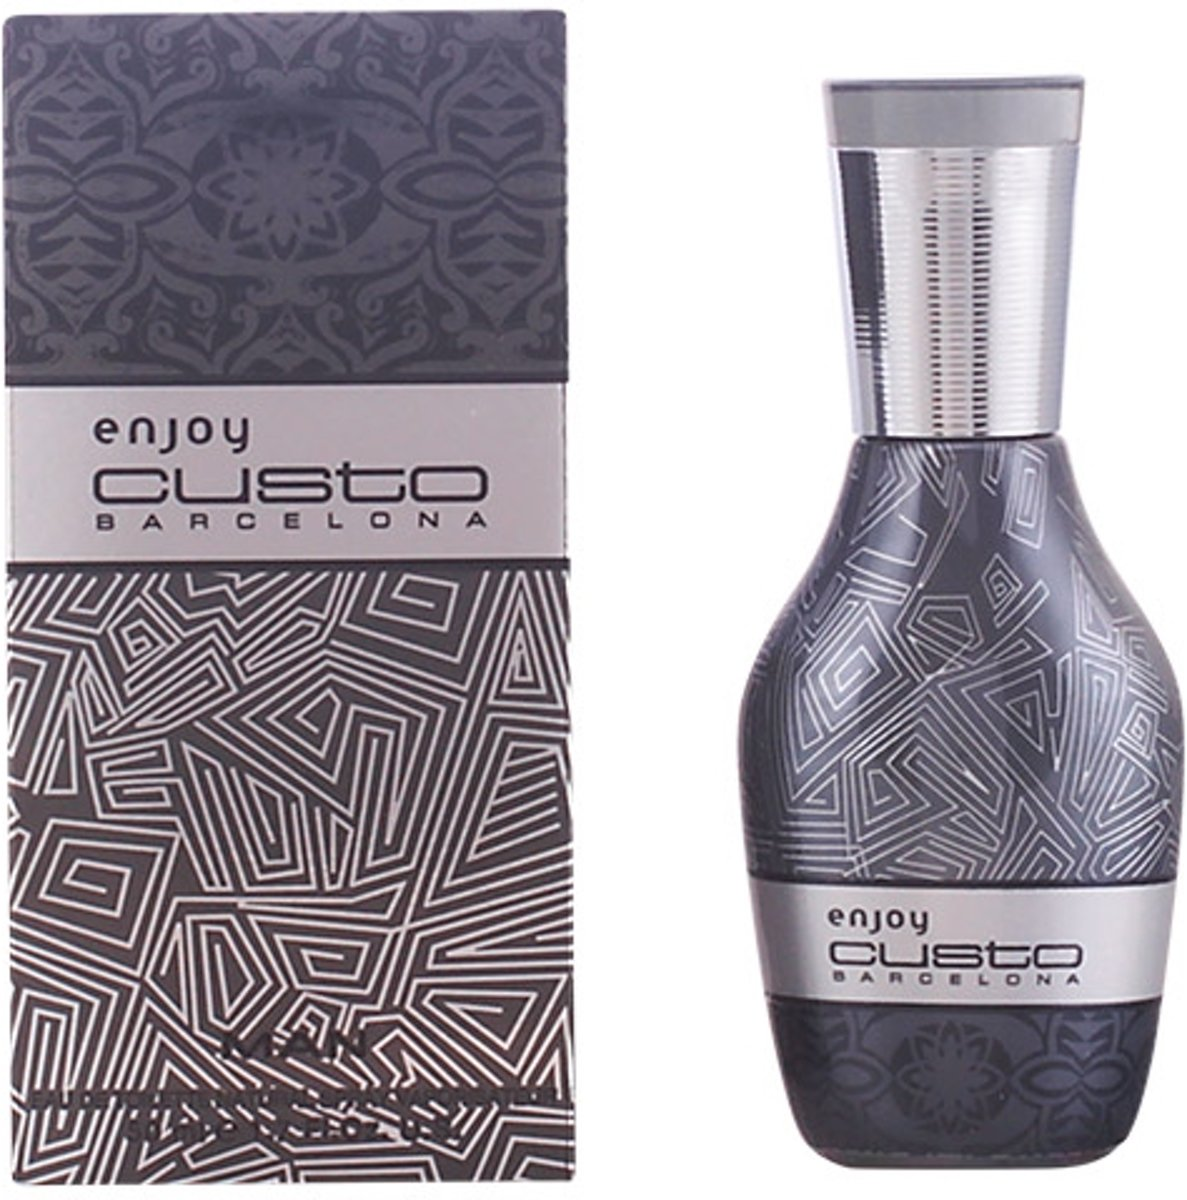 Custo Barcelona Enjoy Custo Man - 50ml - Eau de toilette